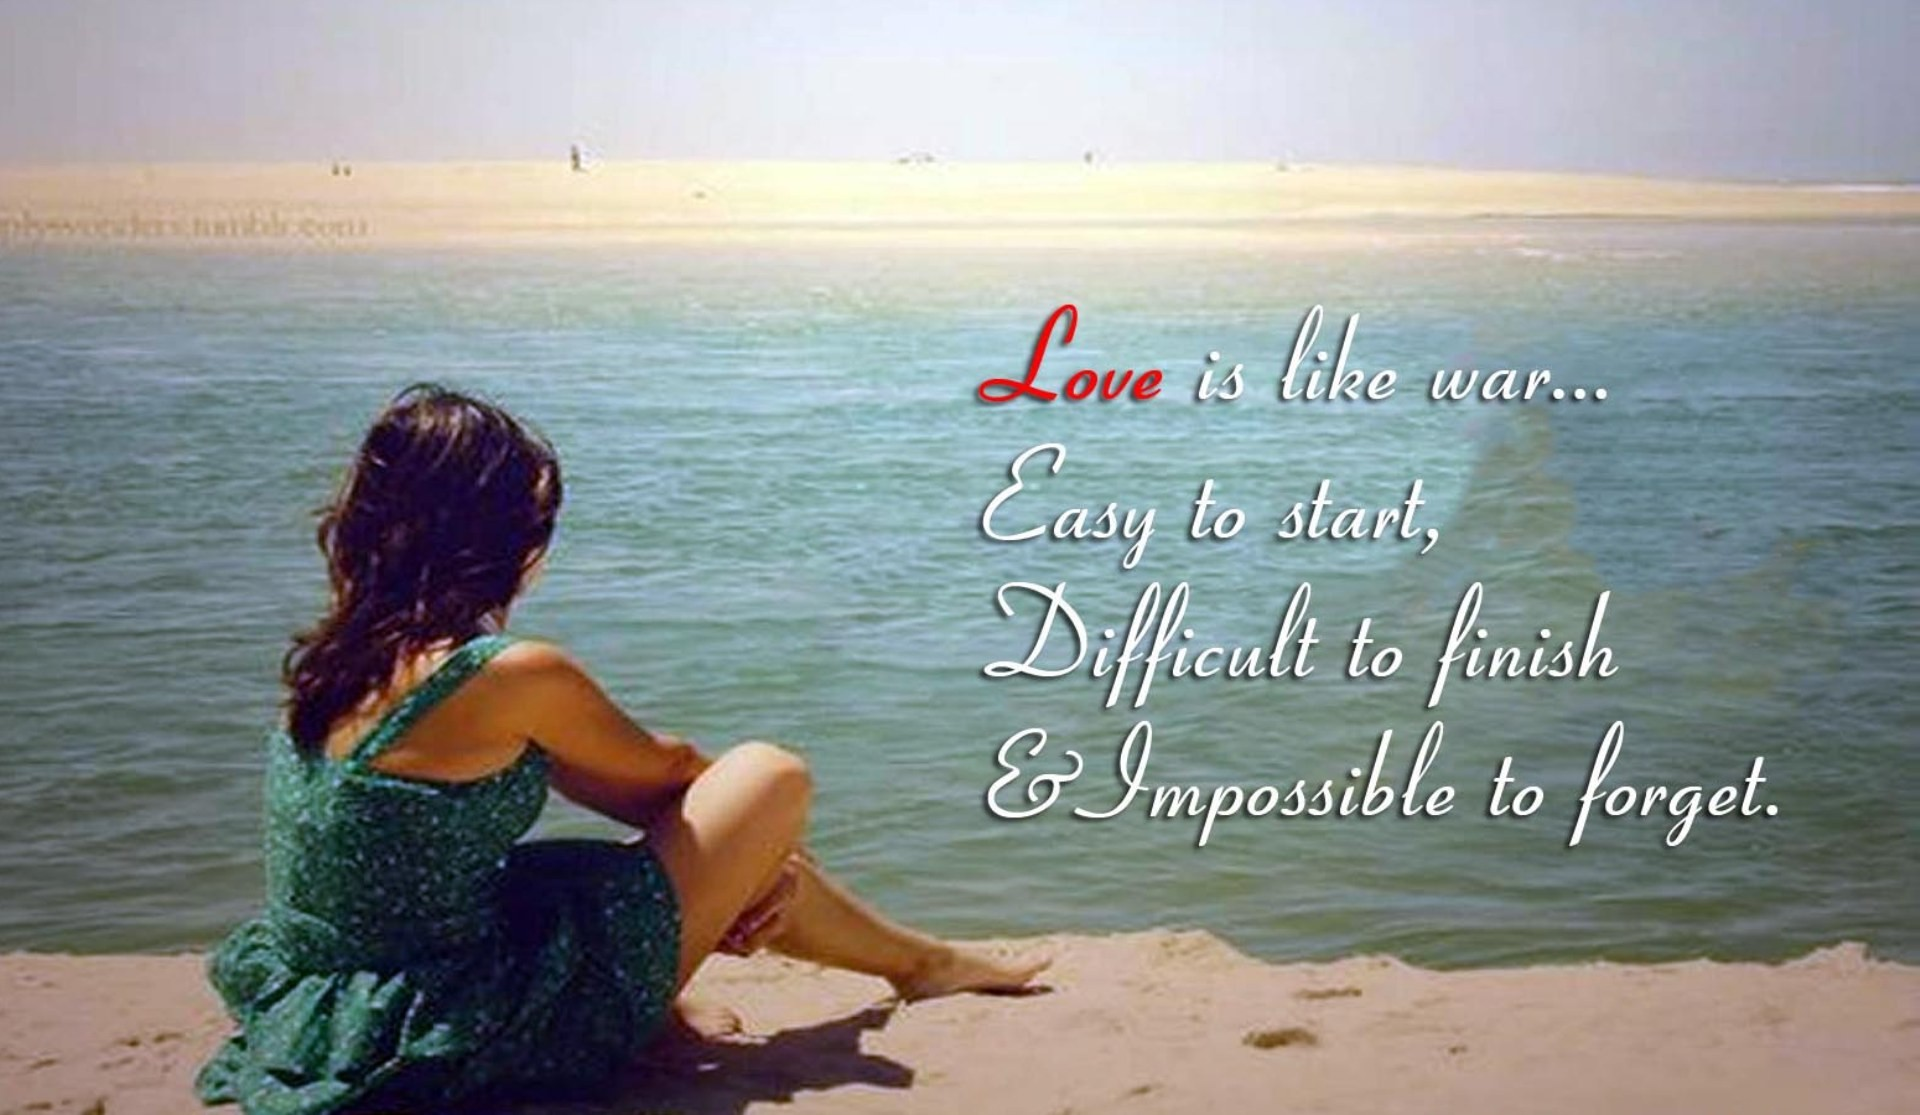 Cute Love Quotes Wallpapers 58 Images